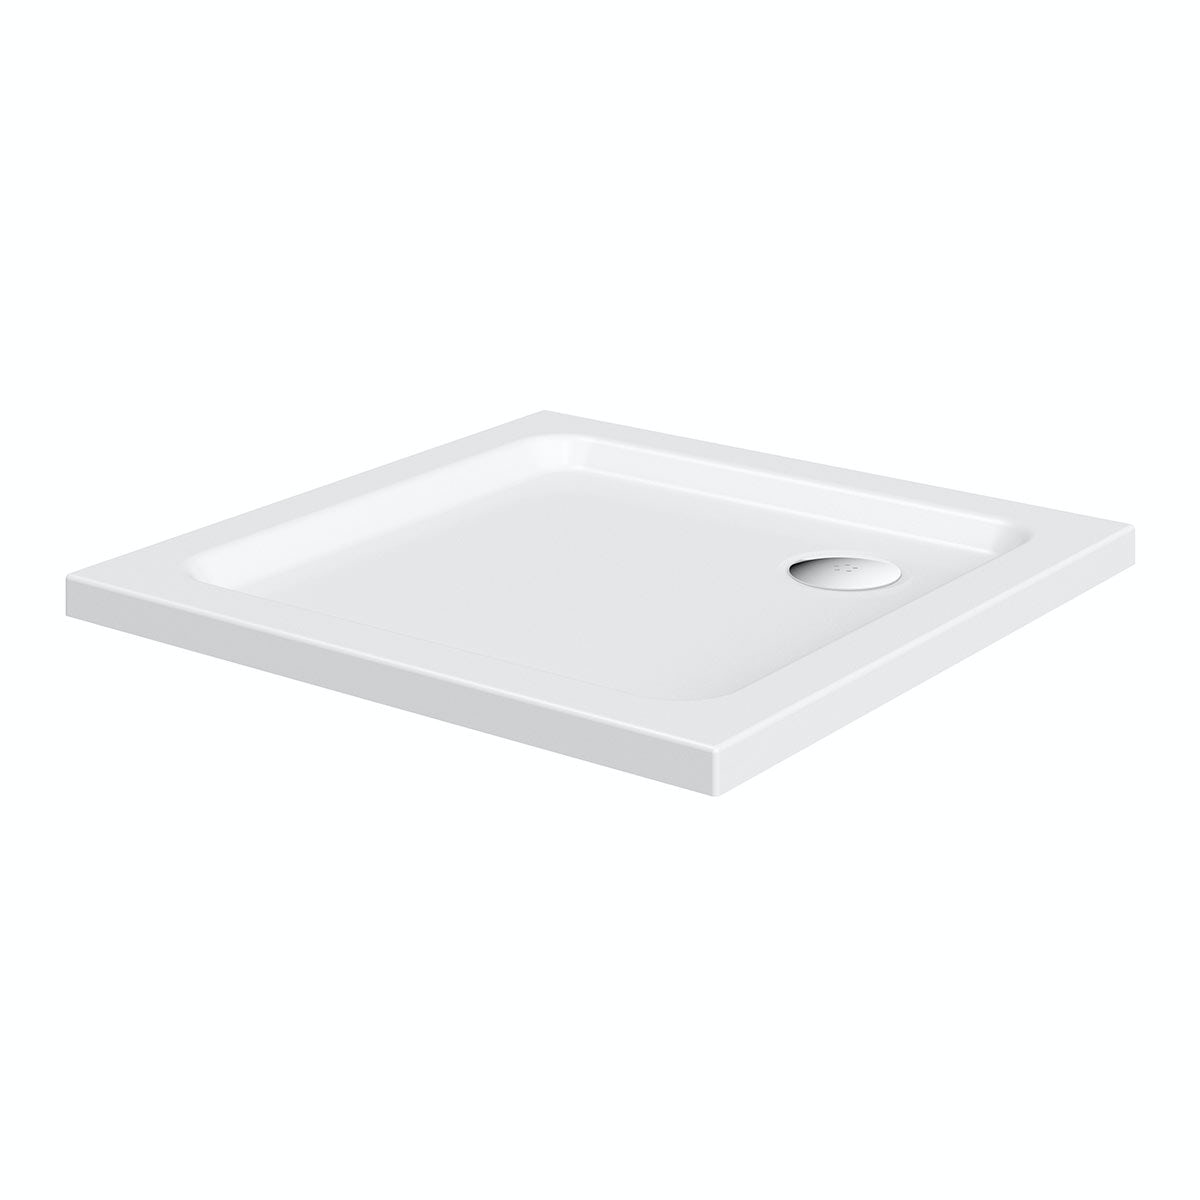 Simplite Square Shower Tray